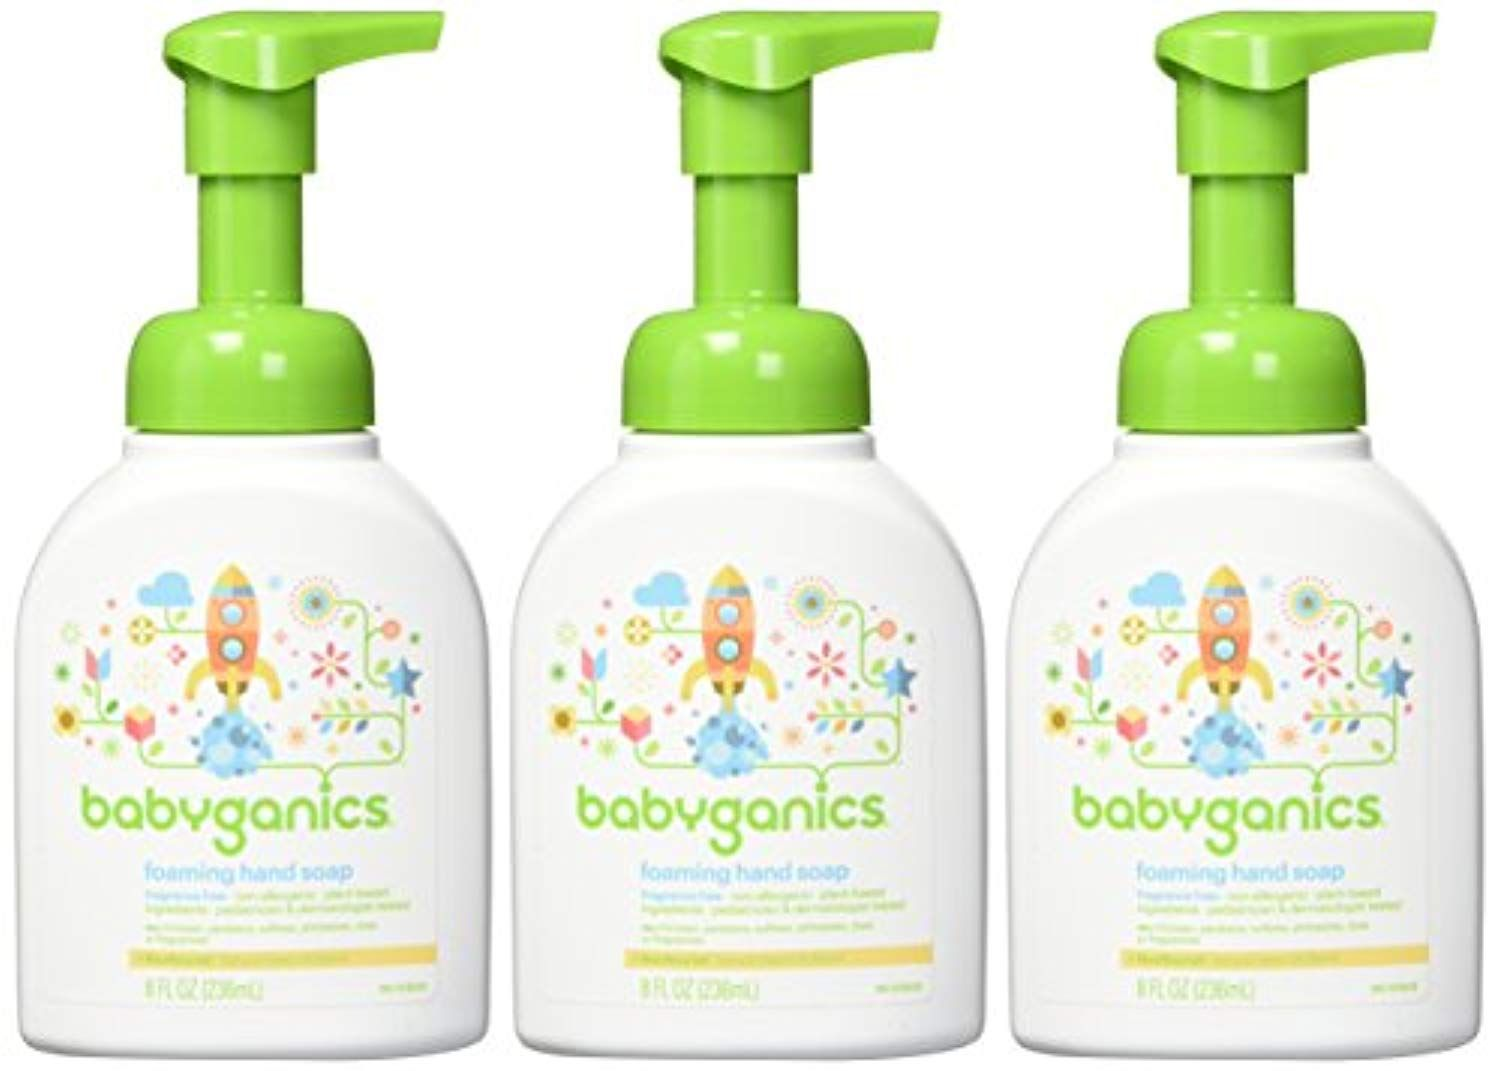 Babyganics Foaming Hand Soap Fragrance Free 8 Oz Pump Bottle